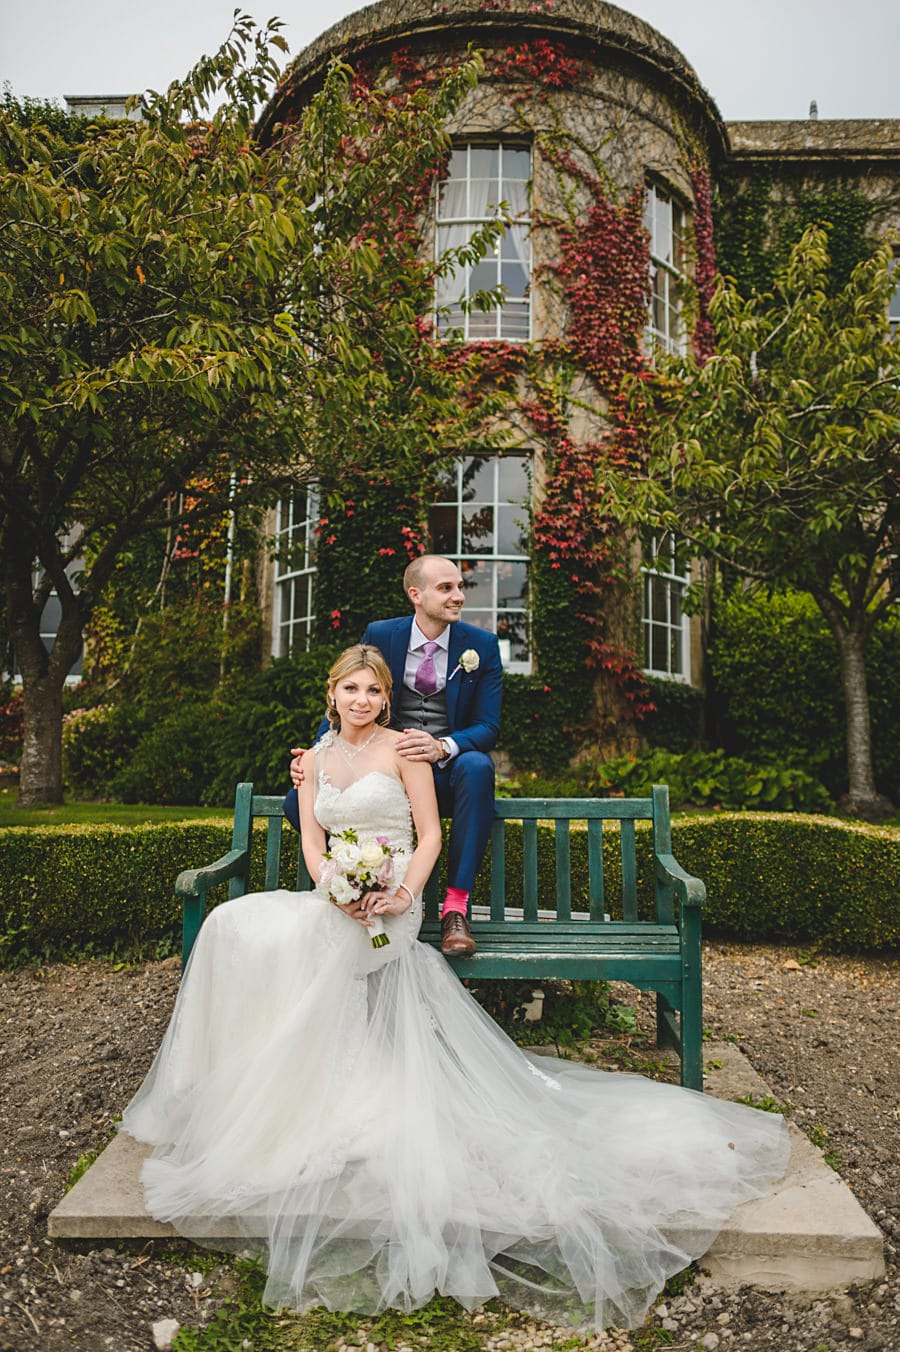 0805 - The Bishopstrow Hotel Wedding in Warminster, Wiltshire | Joanna + Rob